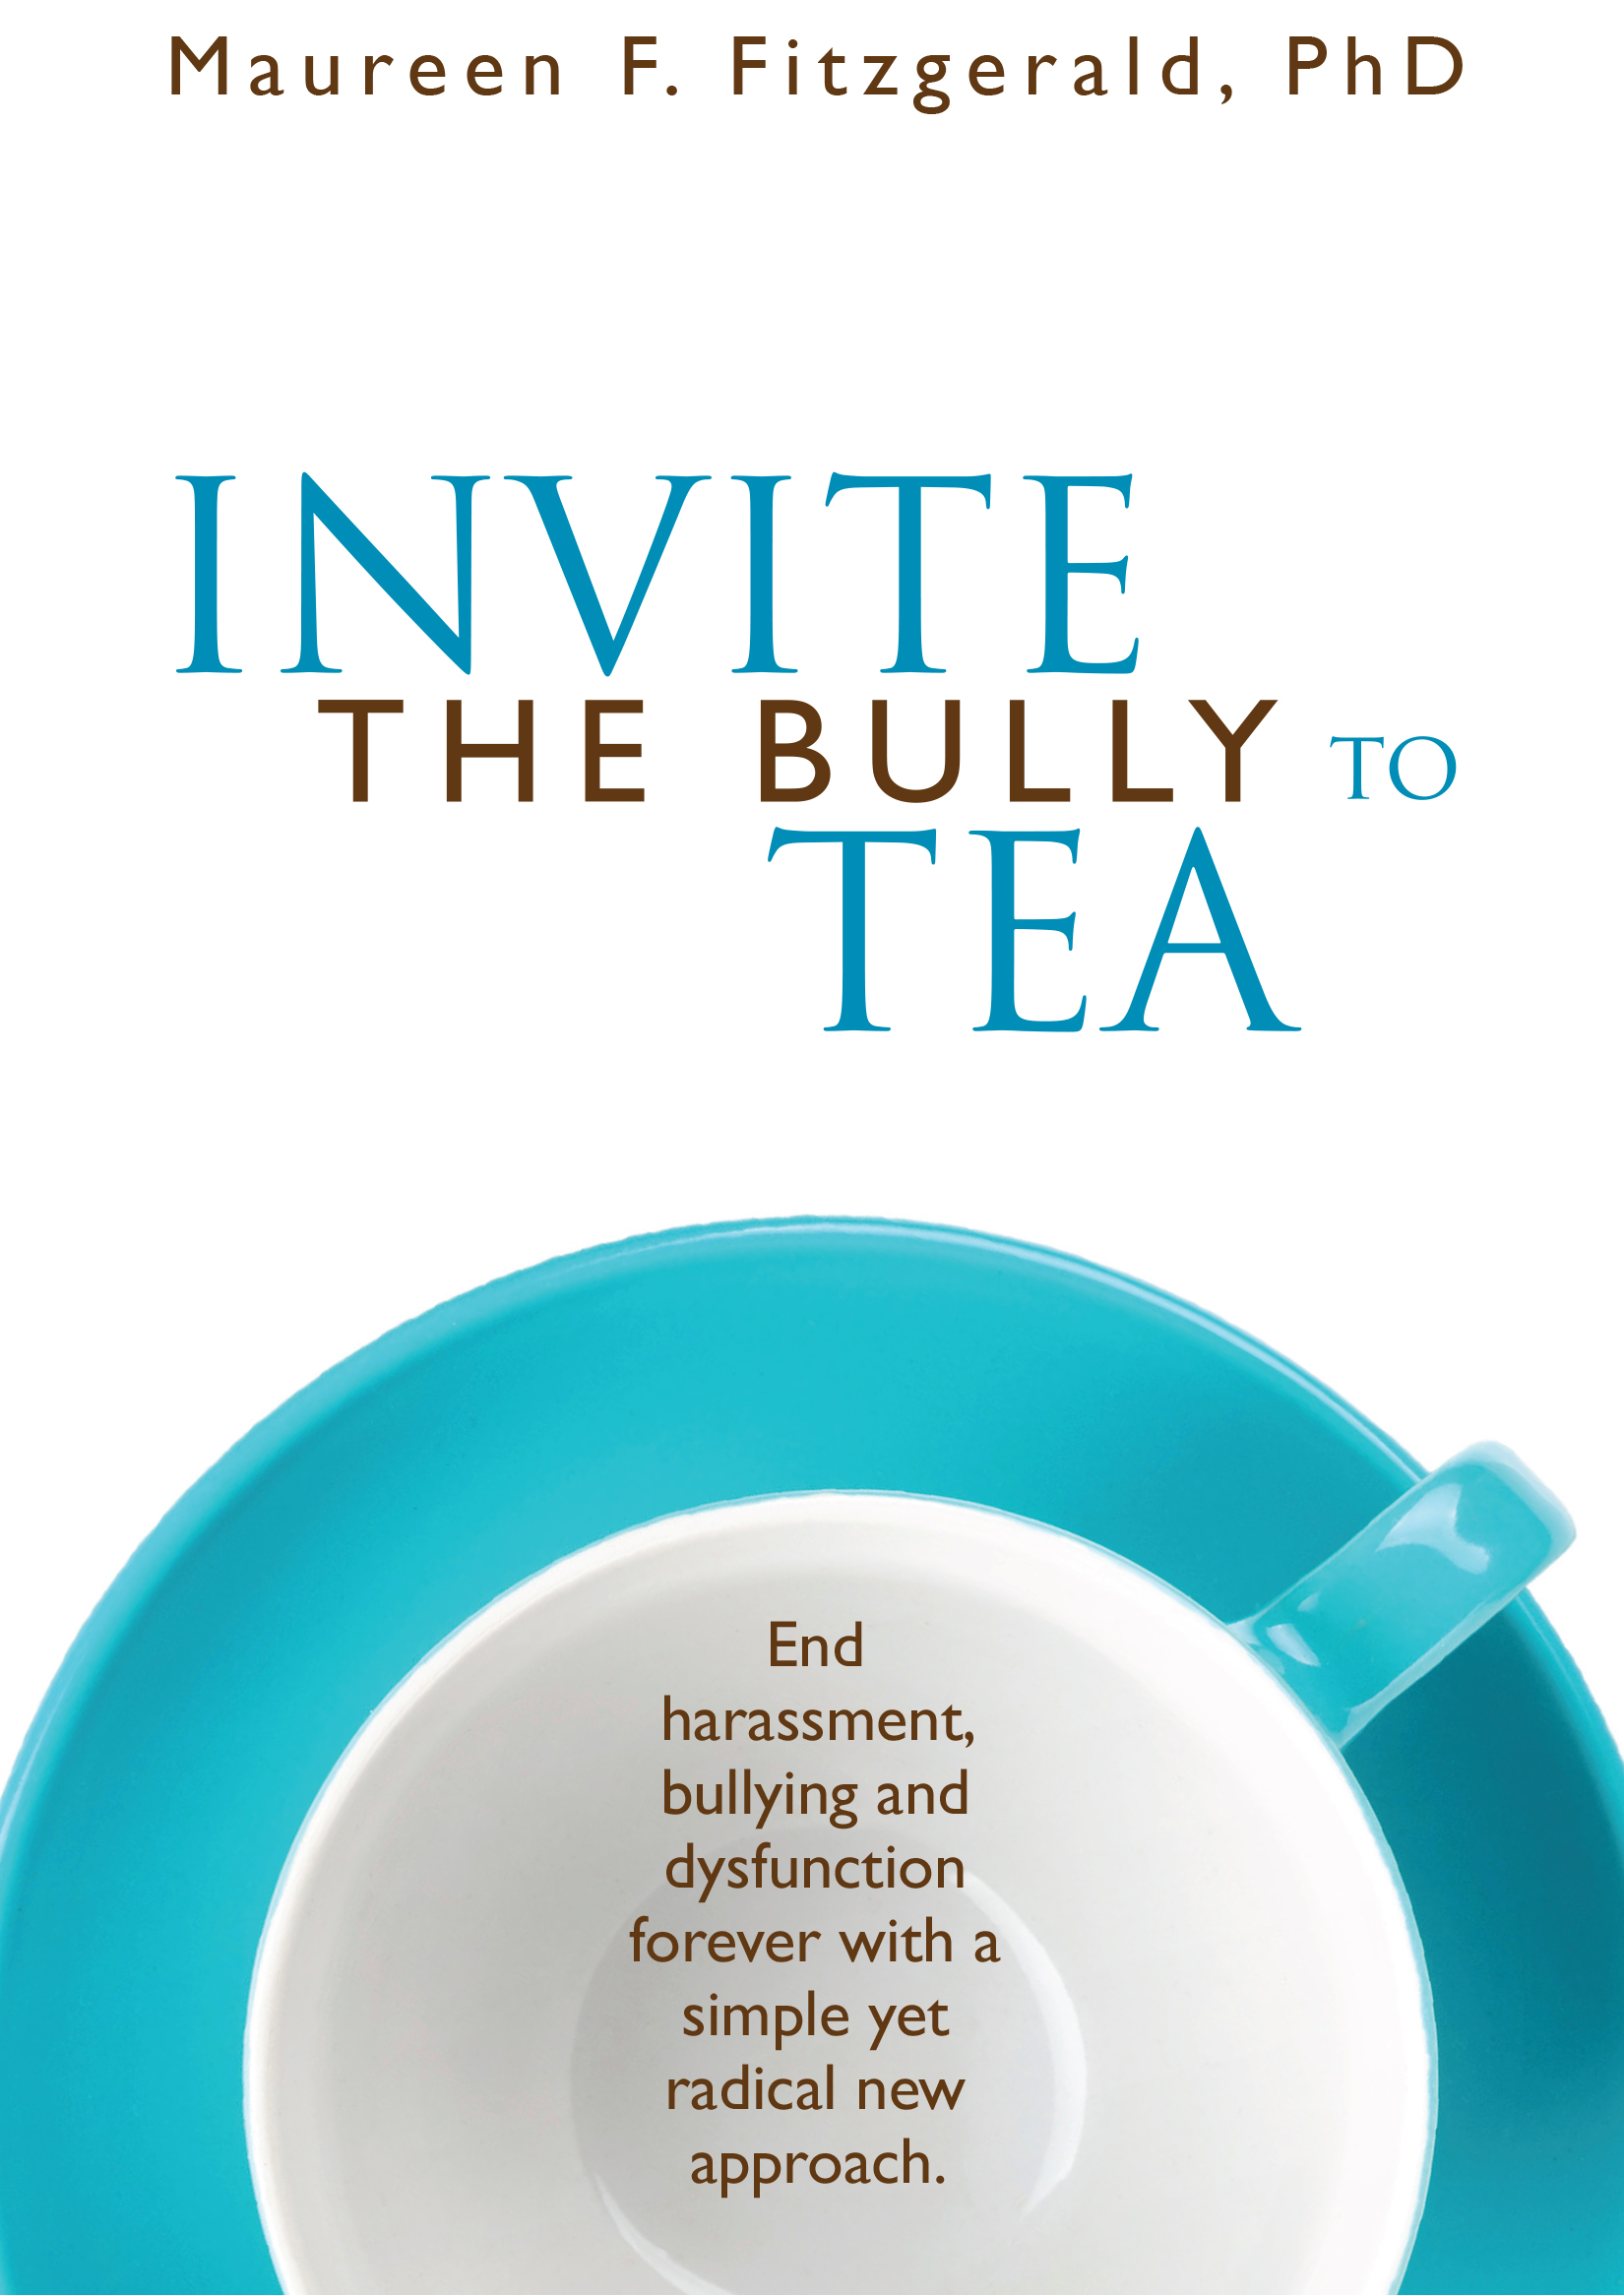 Invite the Bully to Tea   by Maureen Fitzgerald, published in 2015